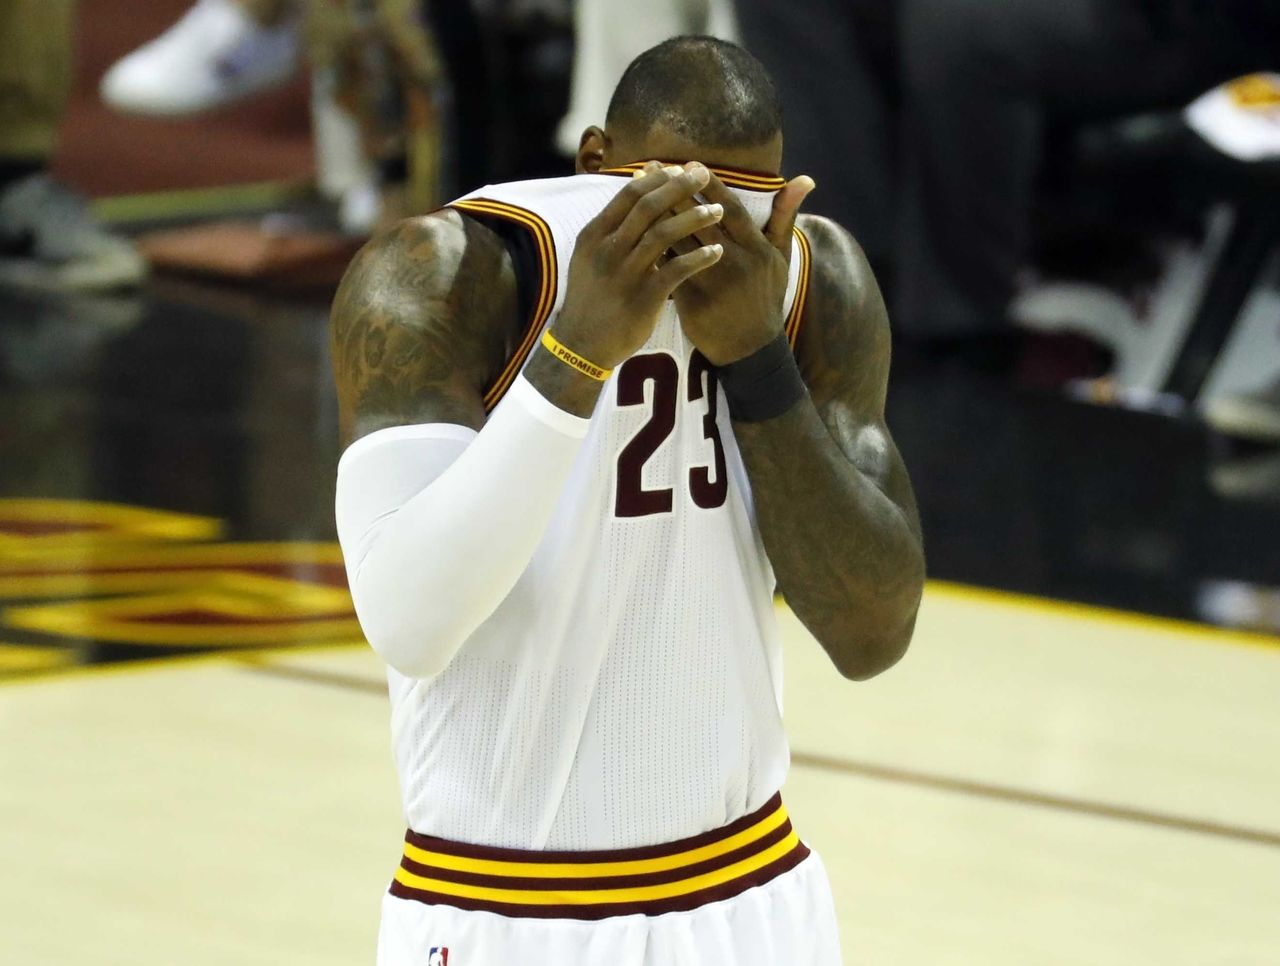 Cropped 2017 05 22t033218z 675786546 nocid rtrmadp 3 nba playoffs boston celtics at cleveland cavaliers